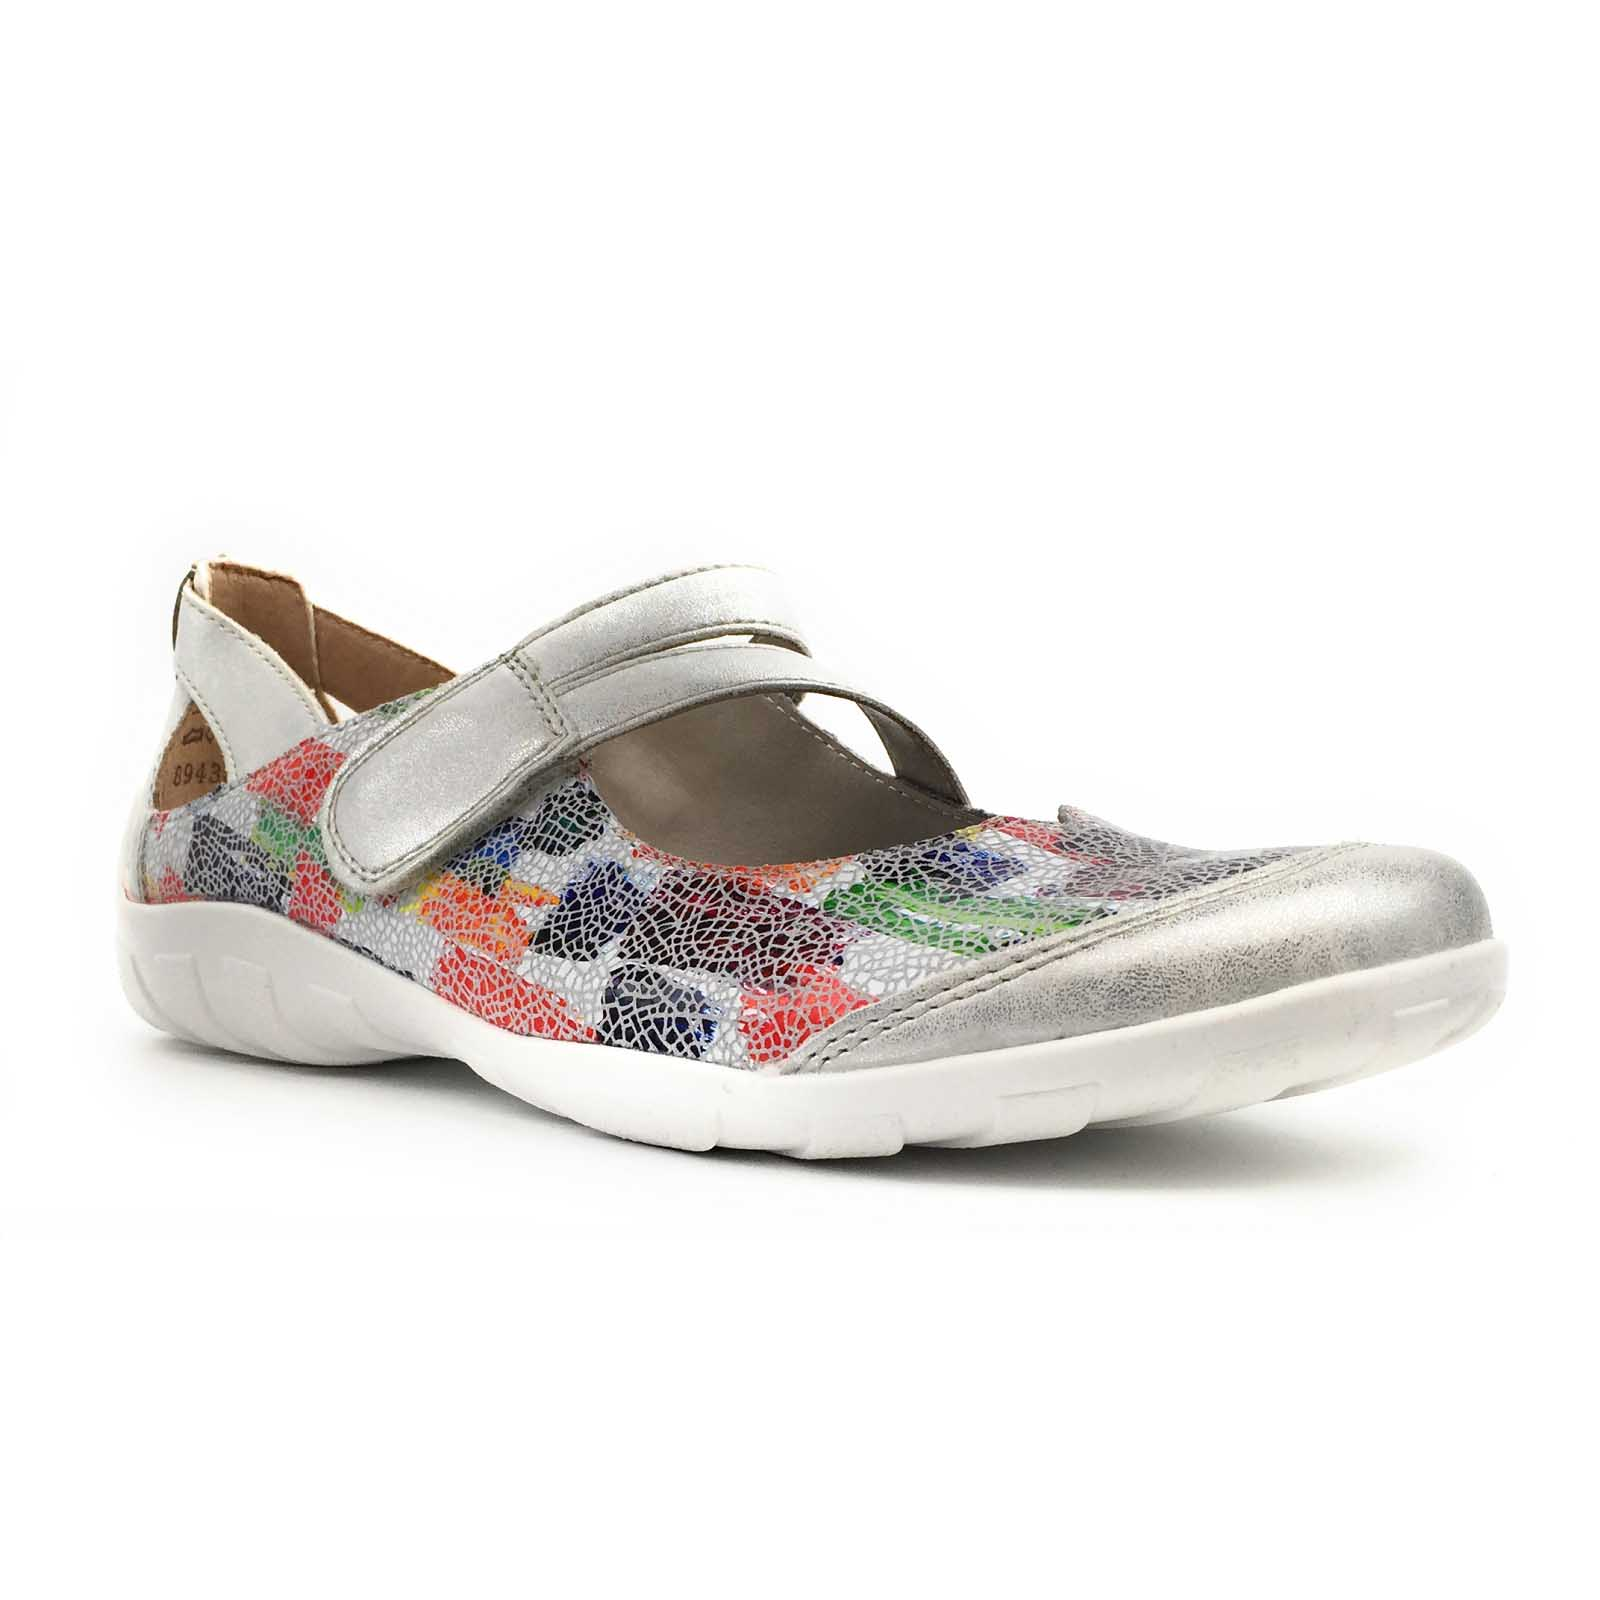 Remonte mary janes r3427 multicolore